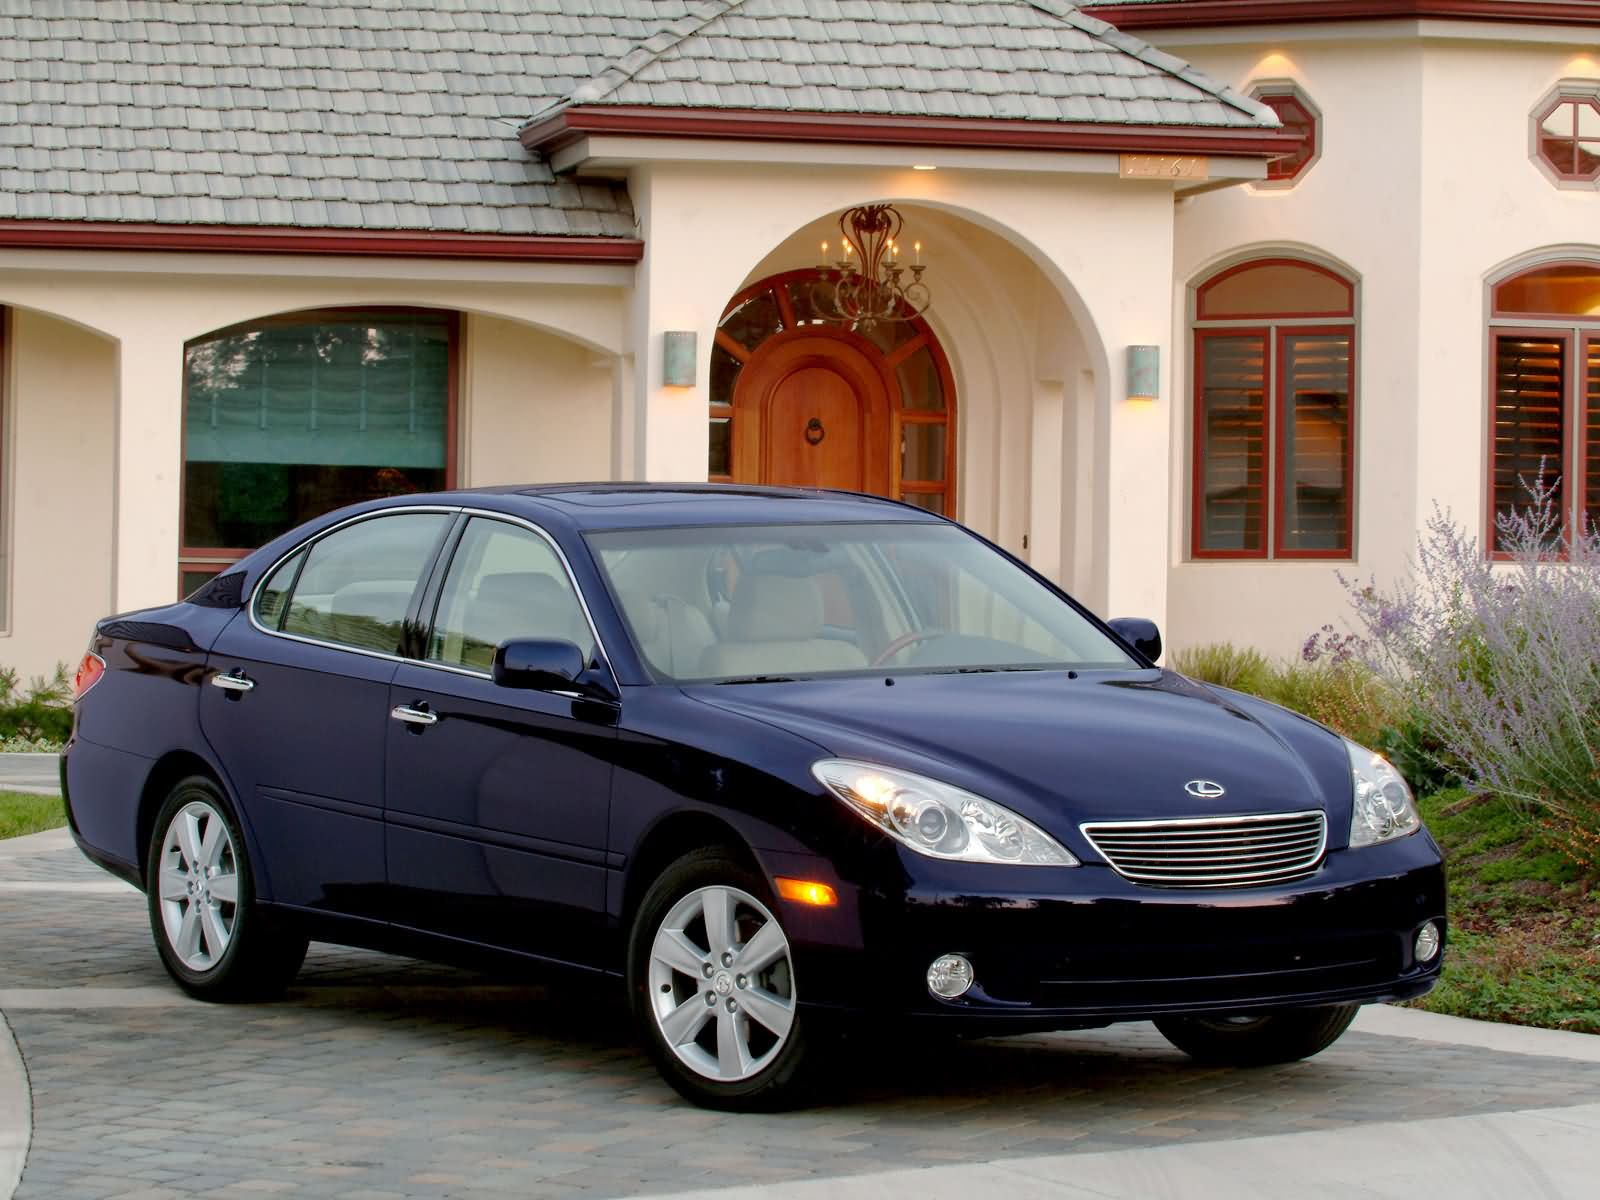 Lexus ES330 photo 11685